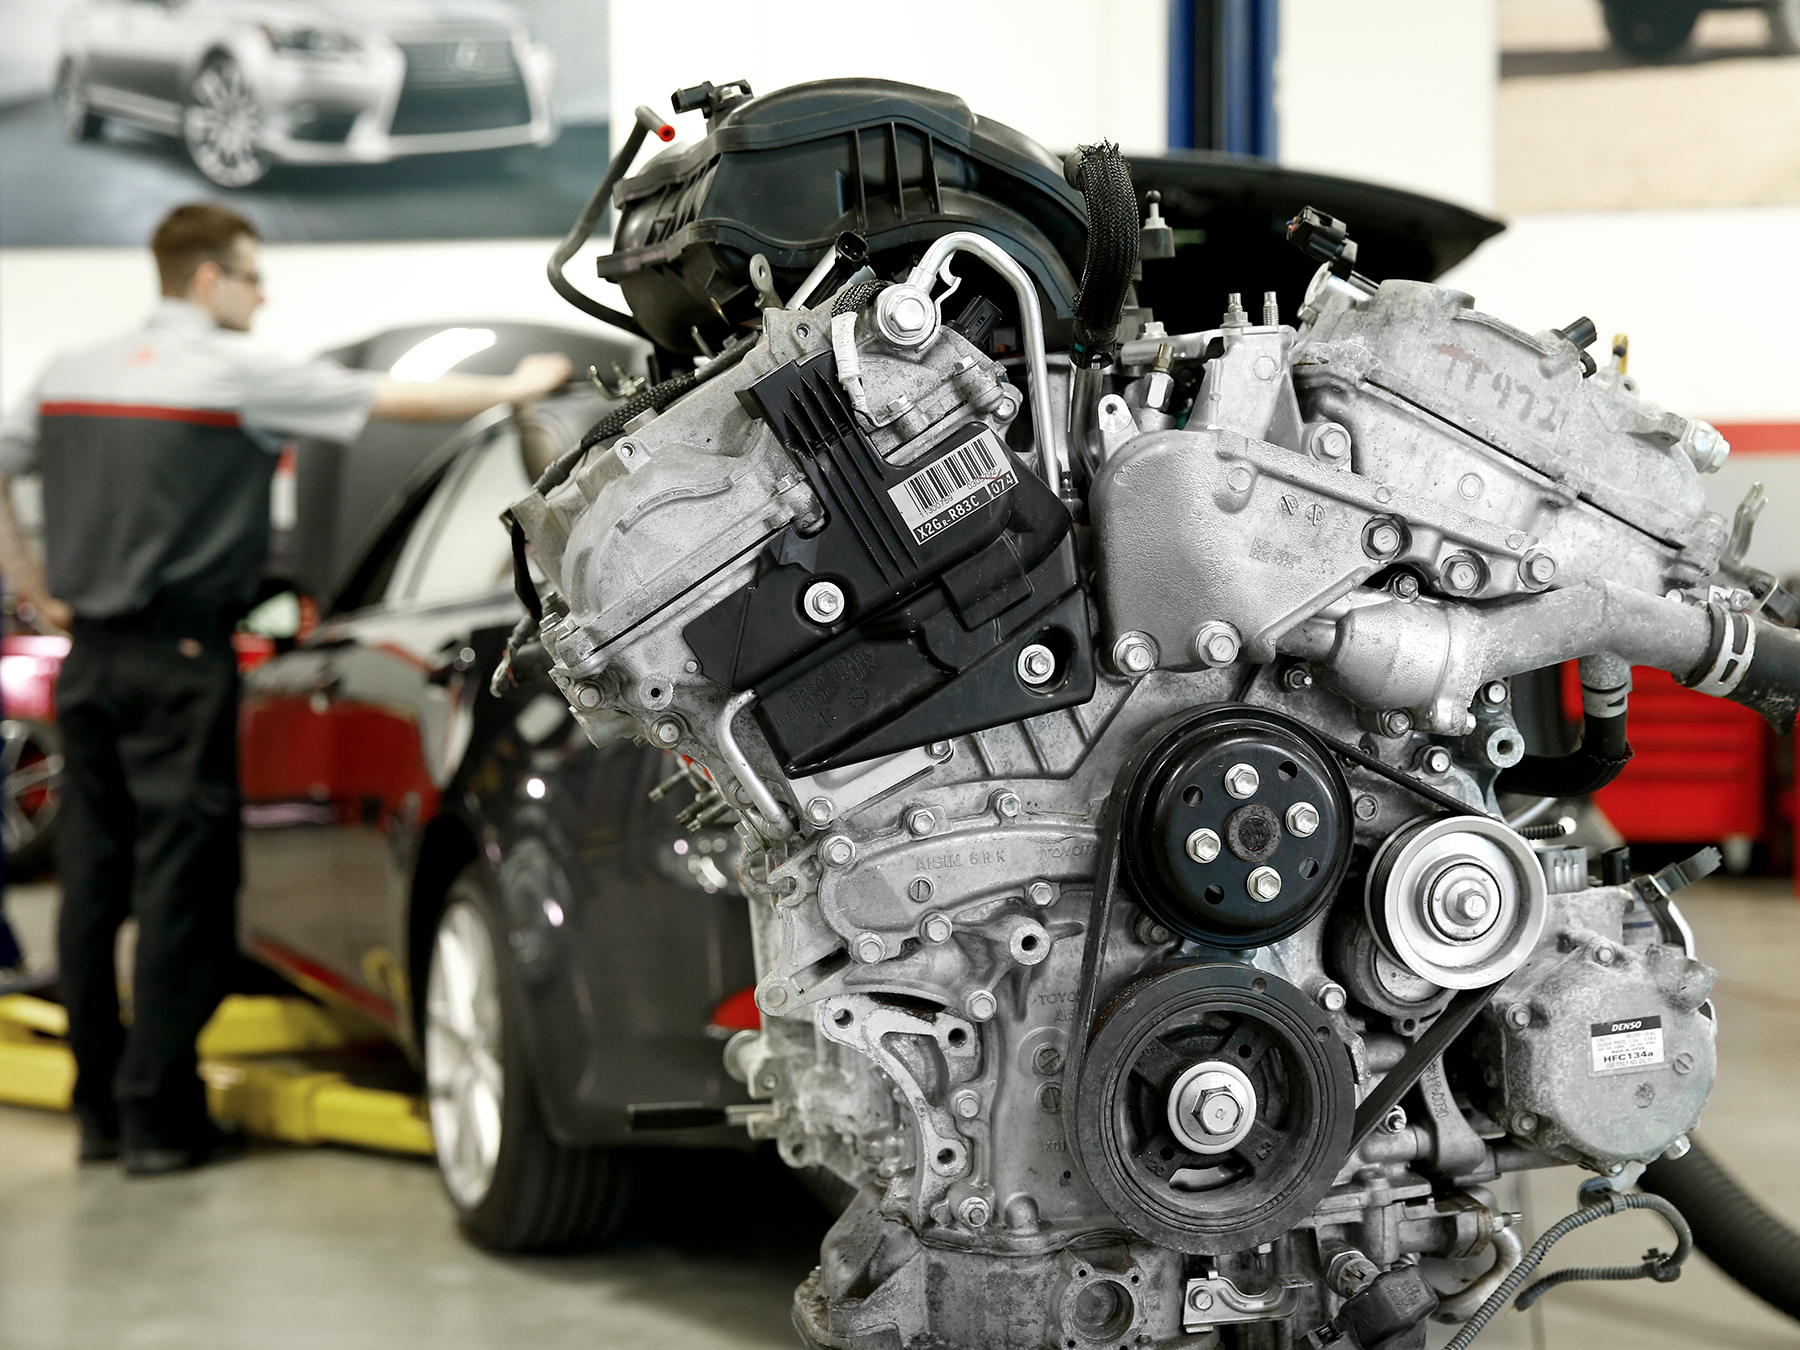 Toyota Technician Training Program | UTI